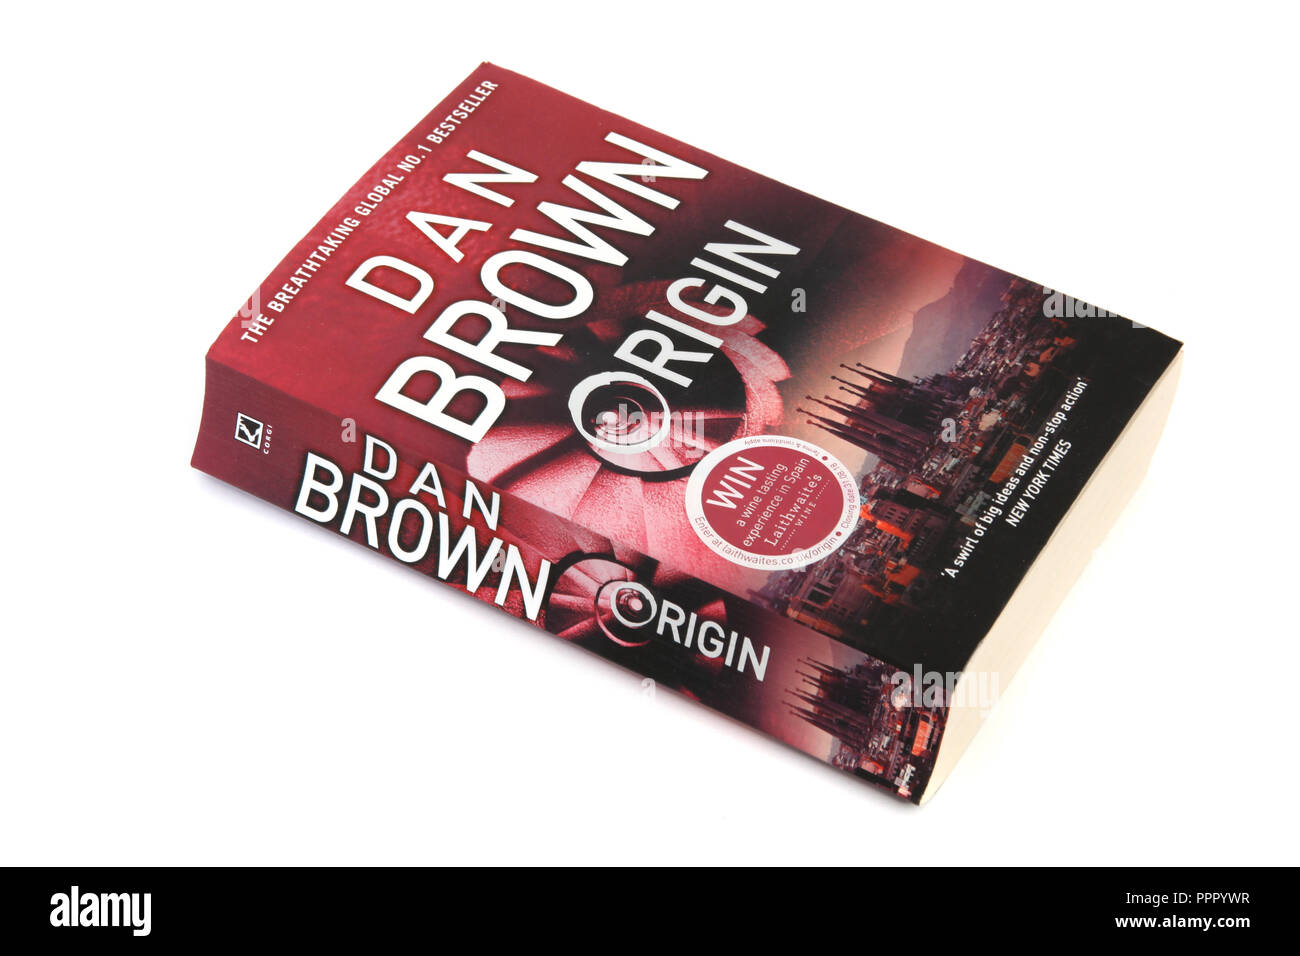 Resultado de imagen para 15th september dan brown